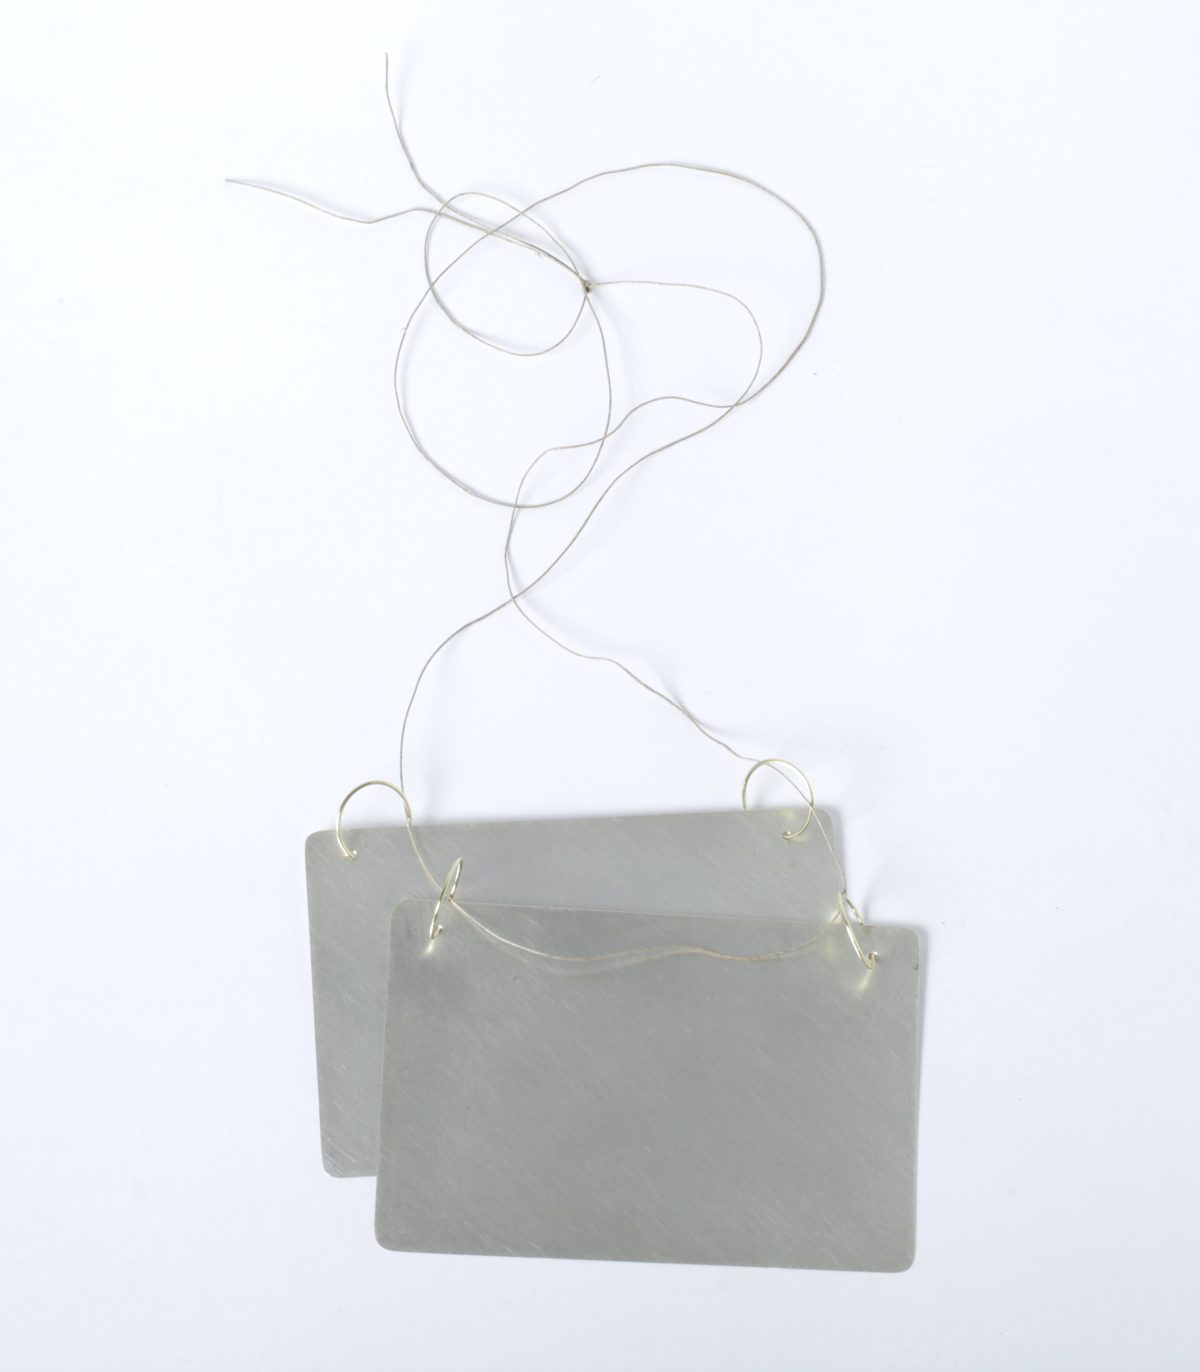 "Helena Lehtinen, necklace ""ICE"", 2012, silber, gold, h. 10 cm, w. 14 cm, Die Neue Sammlung – Permanent loan from Danner Foundation, Munich, Photo: Die Neue Sammlung (Alexander Laurenzo)"